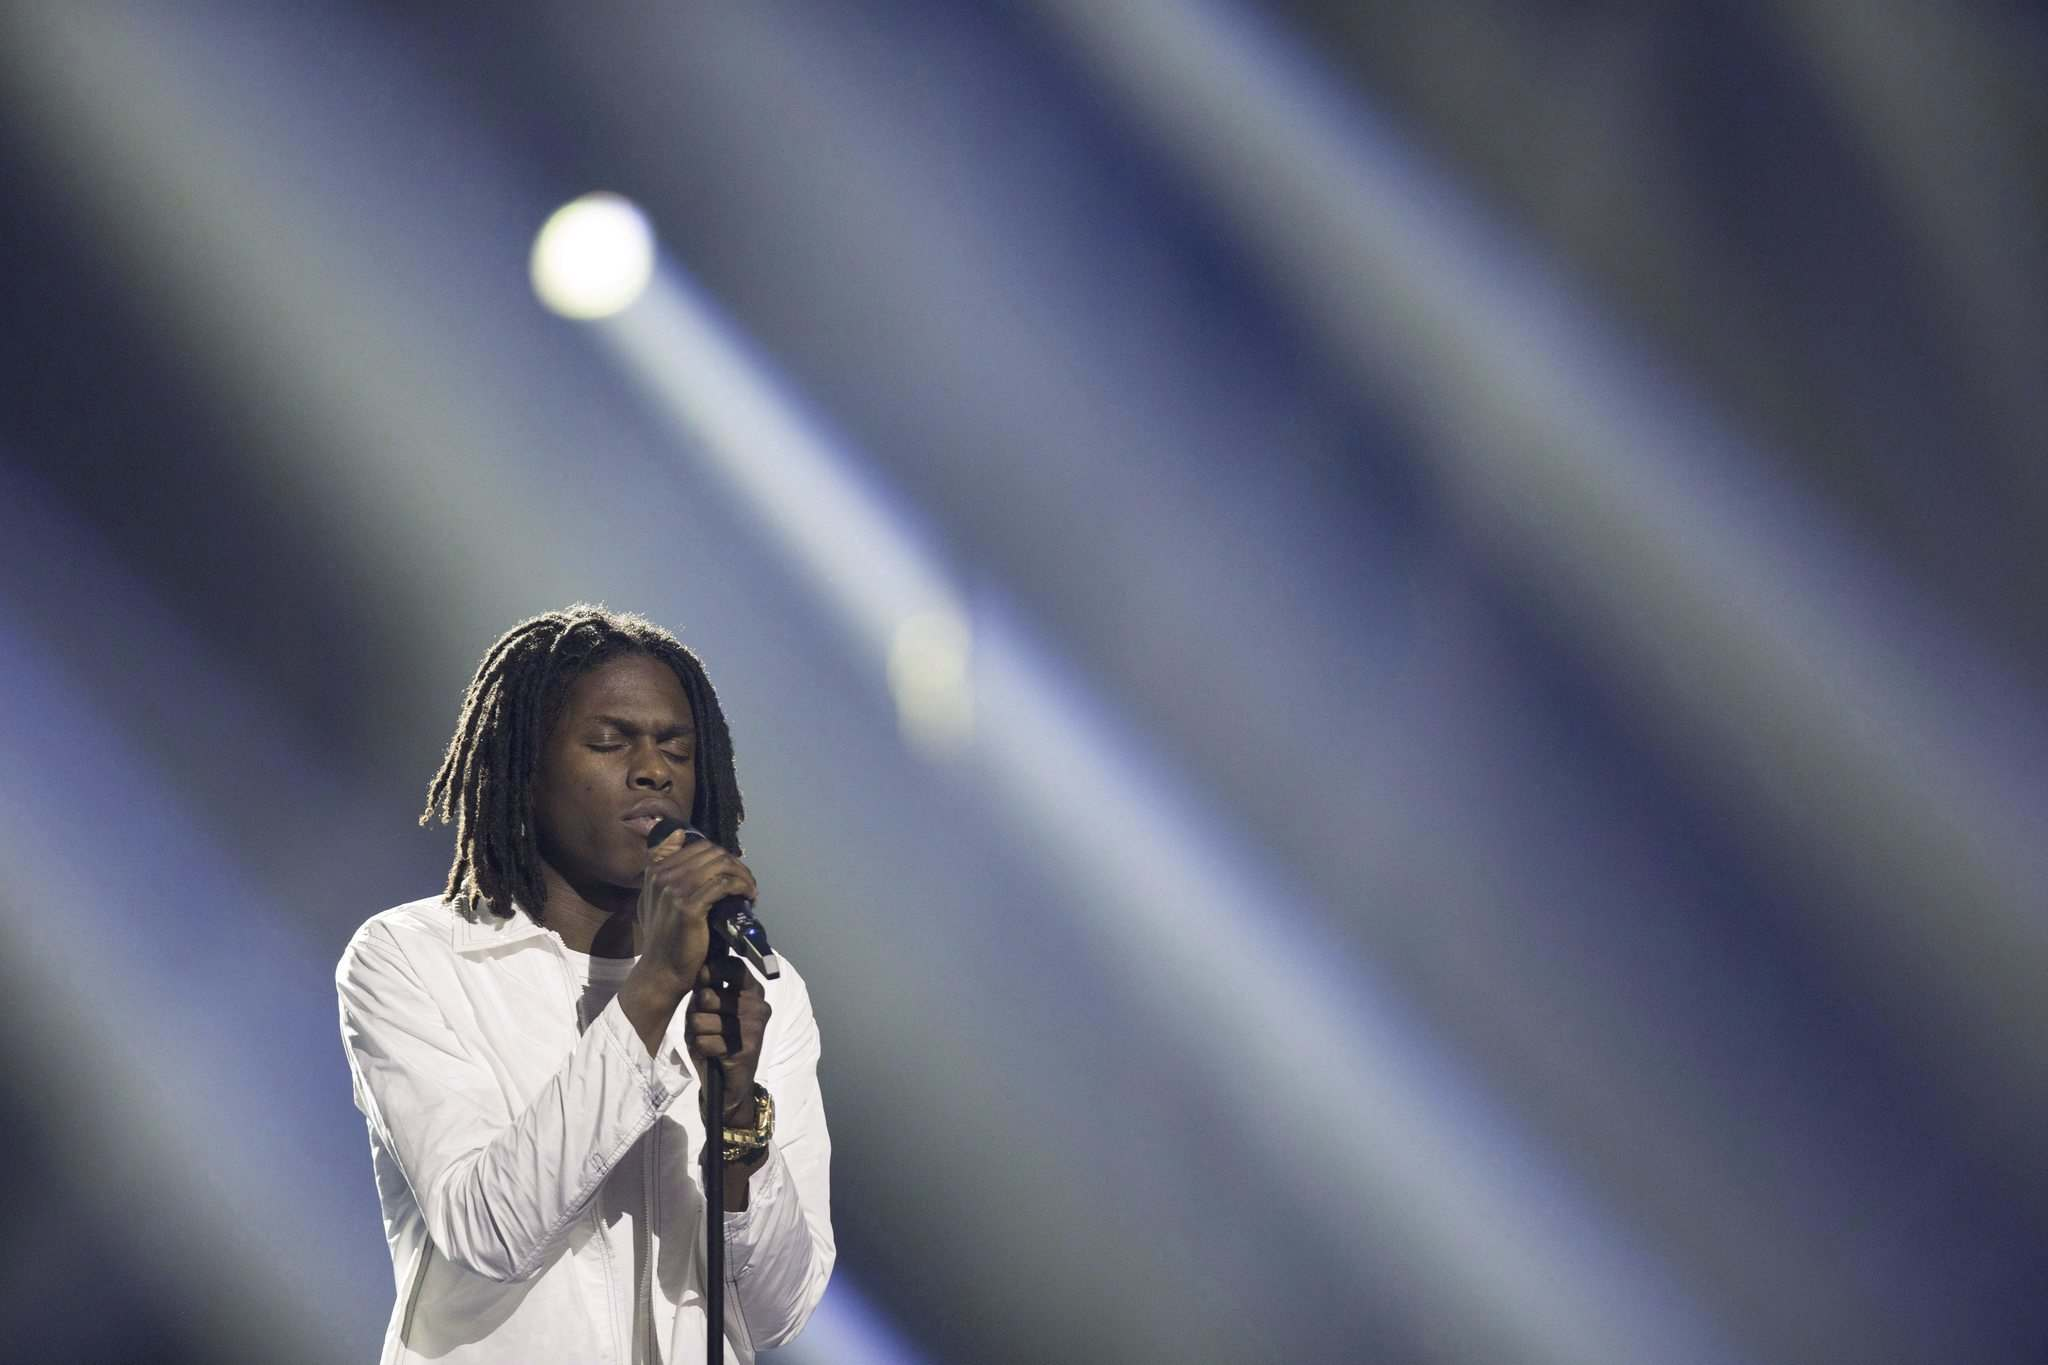 Darryl Dyck / The Canadian Press files</p><p>Daniel Caesar will perform at Bell MTS Place on Wednesday, Nov. 20.</p></p>